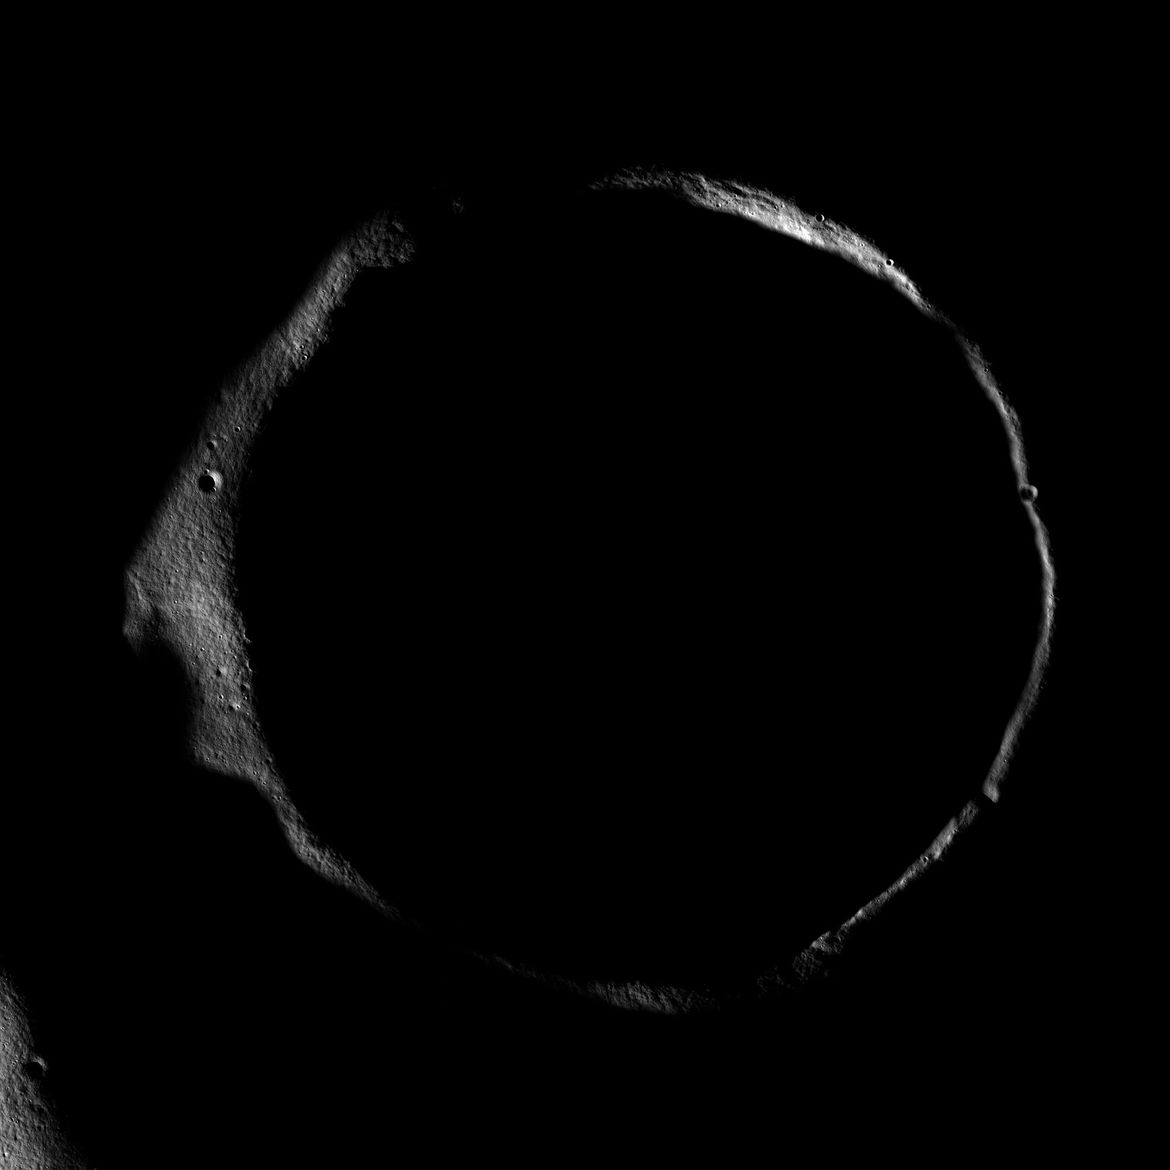 Erlanger crater, near the Moon's north pole, with just its rim lit by low sunlight. Credit: NASA/GSFC/Arizona State University